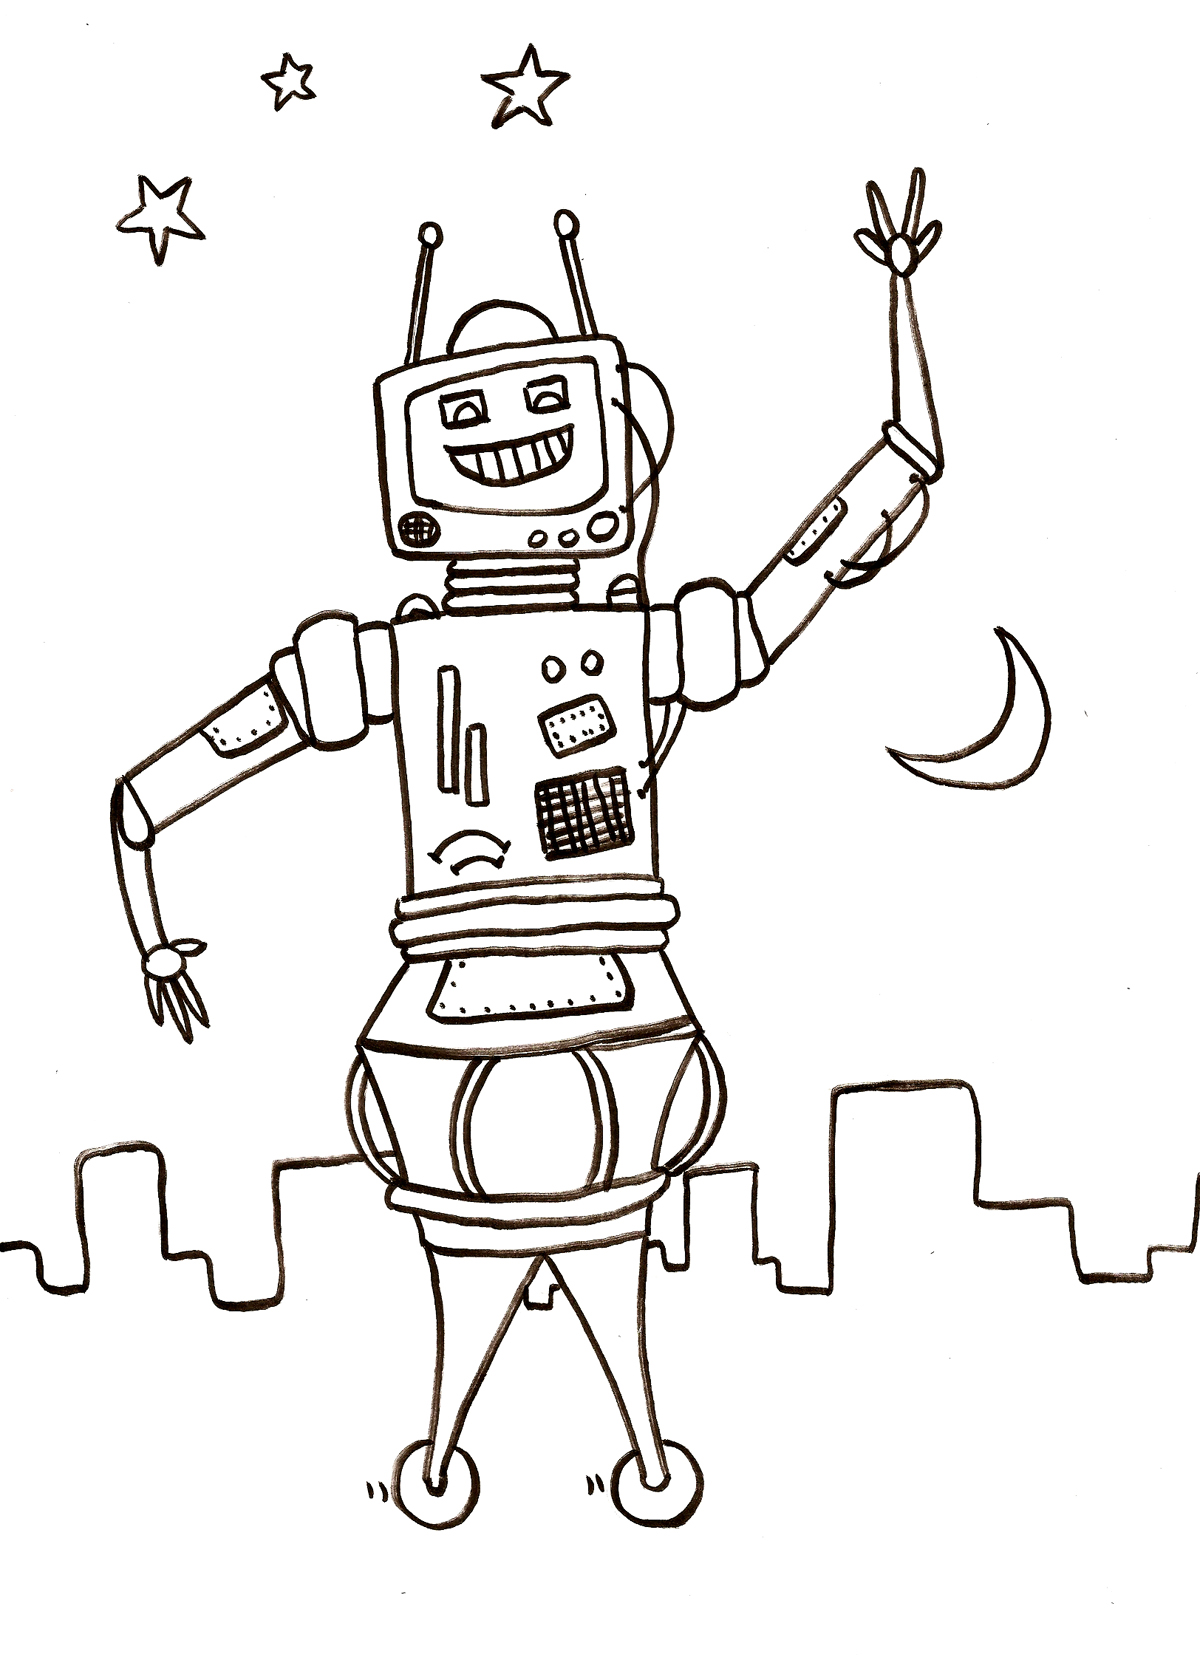 Free Robots coloring page to print and color, for kids